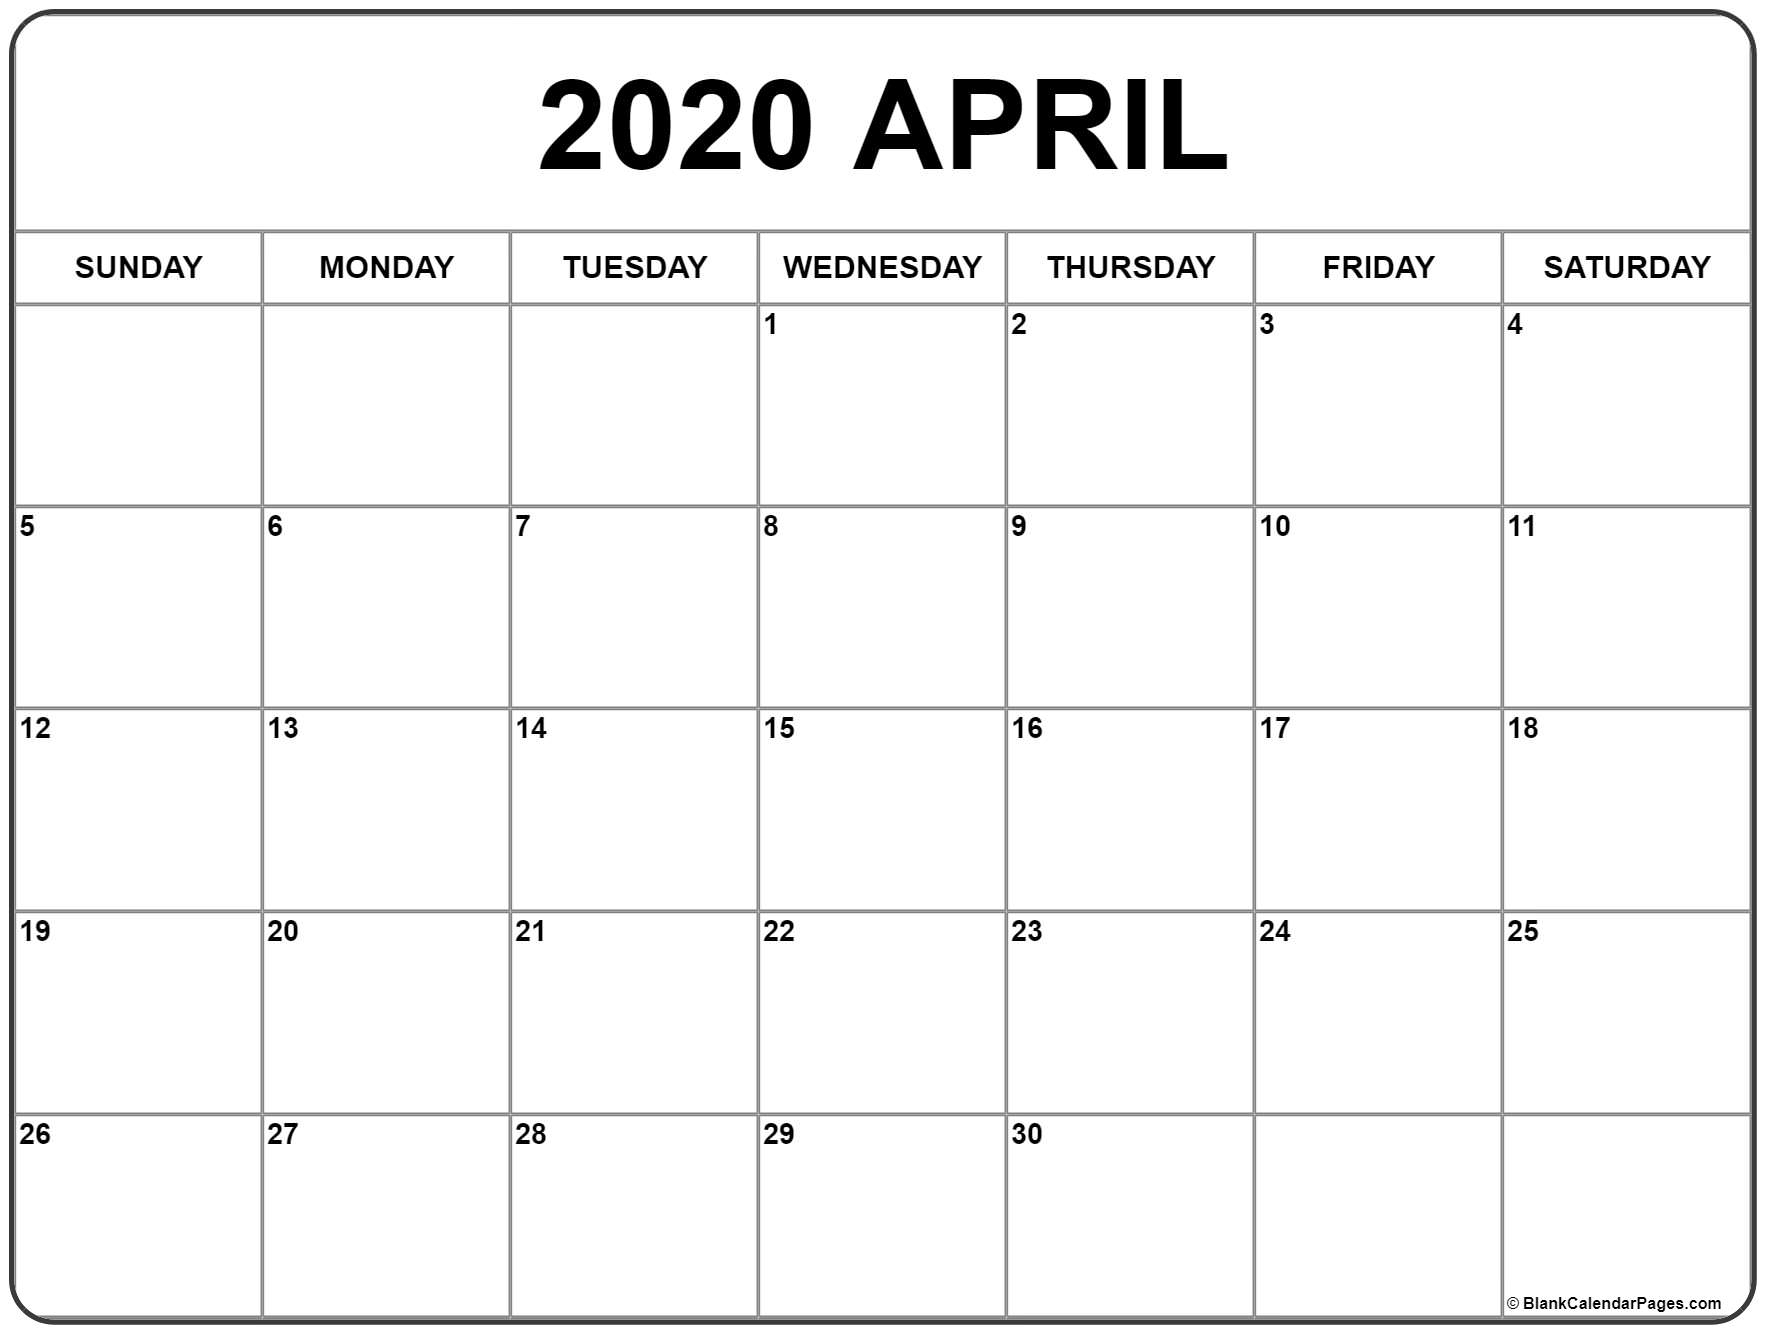 April 2020 Calendar | Free Printable Monthly Calendars regarding 2020 Free Printable Calendar Large Numbers